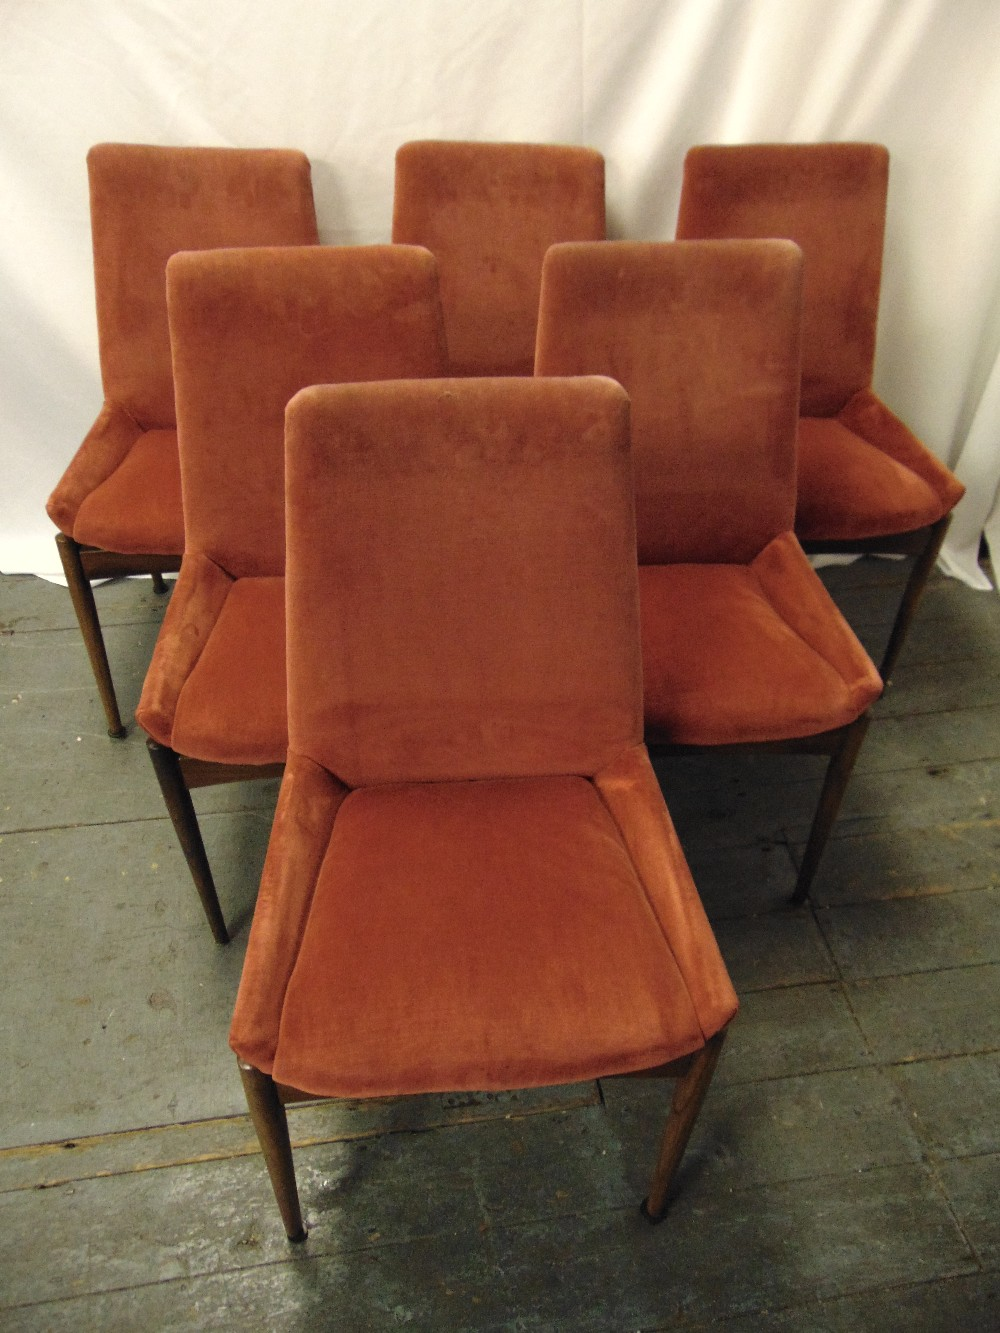 Lot 24 - Robert Heritage for Archie Shine six rosewood upholstered dining chairs, A/F, CITES certificate